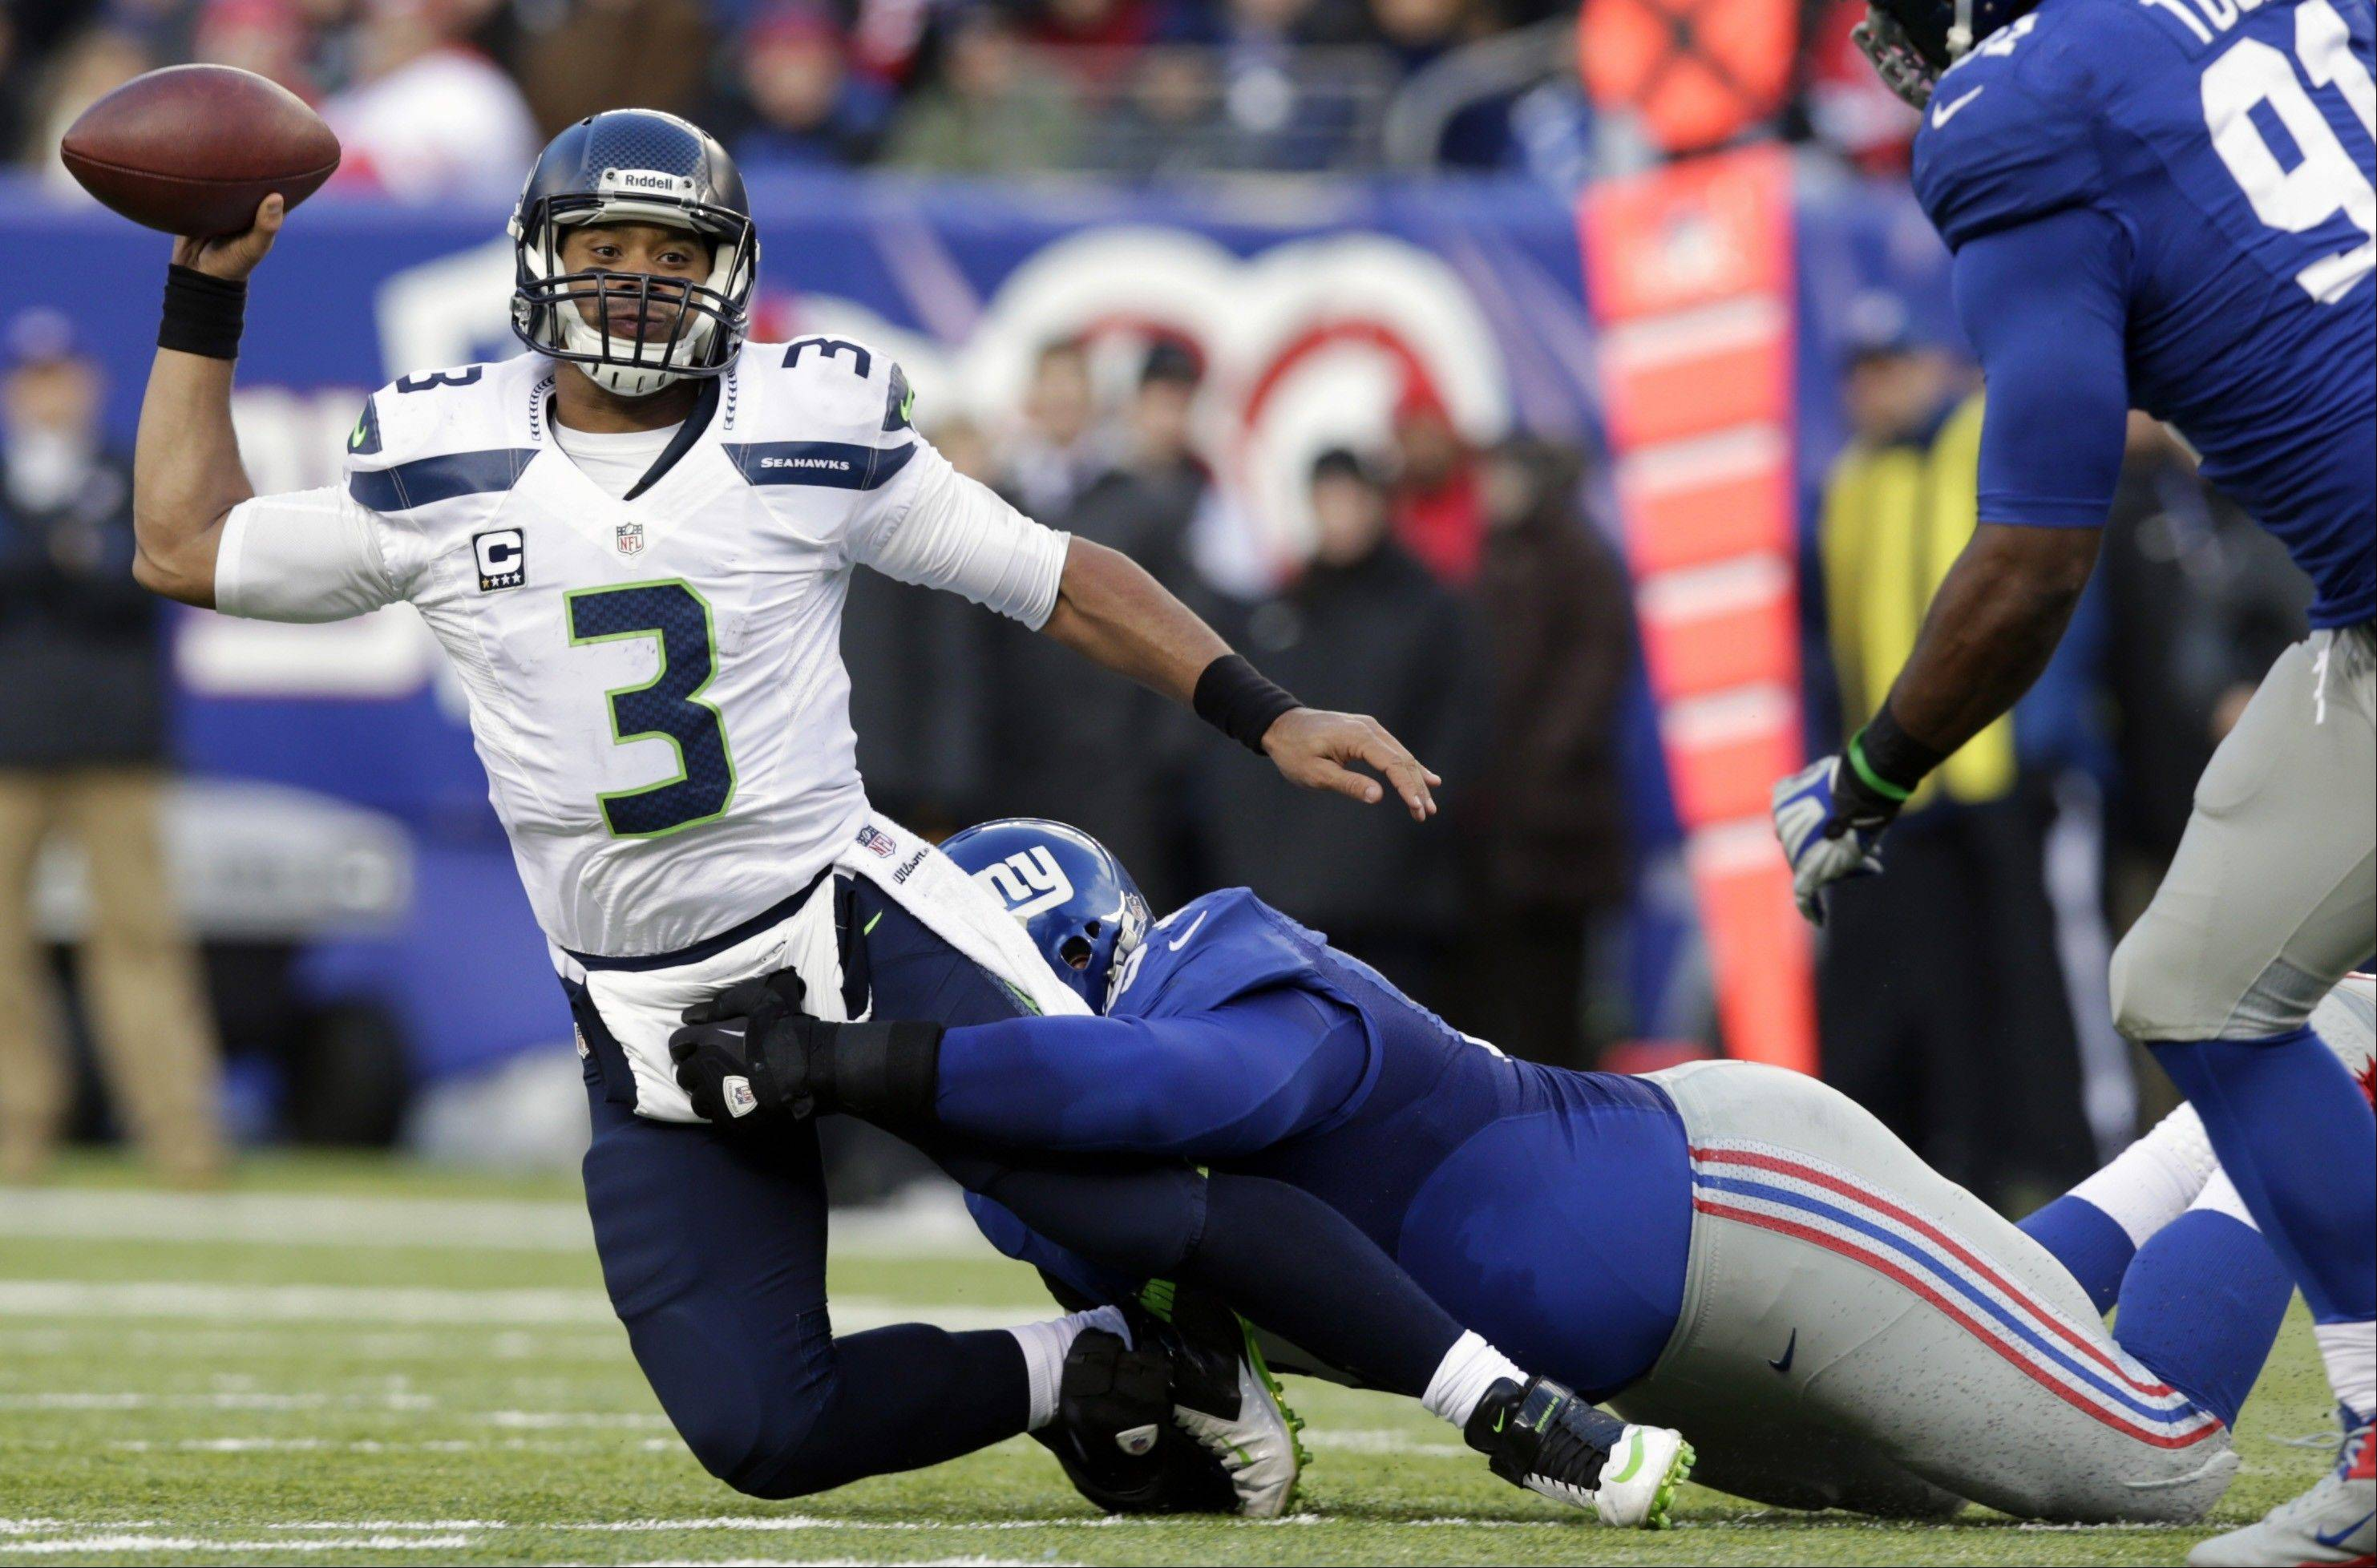 Seattle Seahawks quarterback Russell Wilson (3) is sacked by New York Giants defensive tackle Linval Joseph during the first half of an NFL football game, Sunday, Dec. 15, 2013, in East Rutherford, N.J.